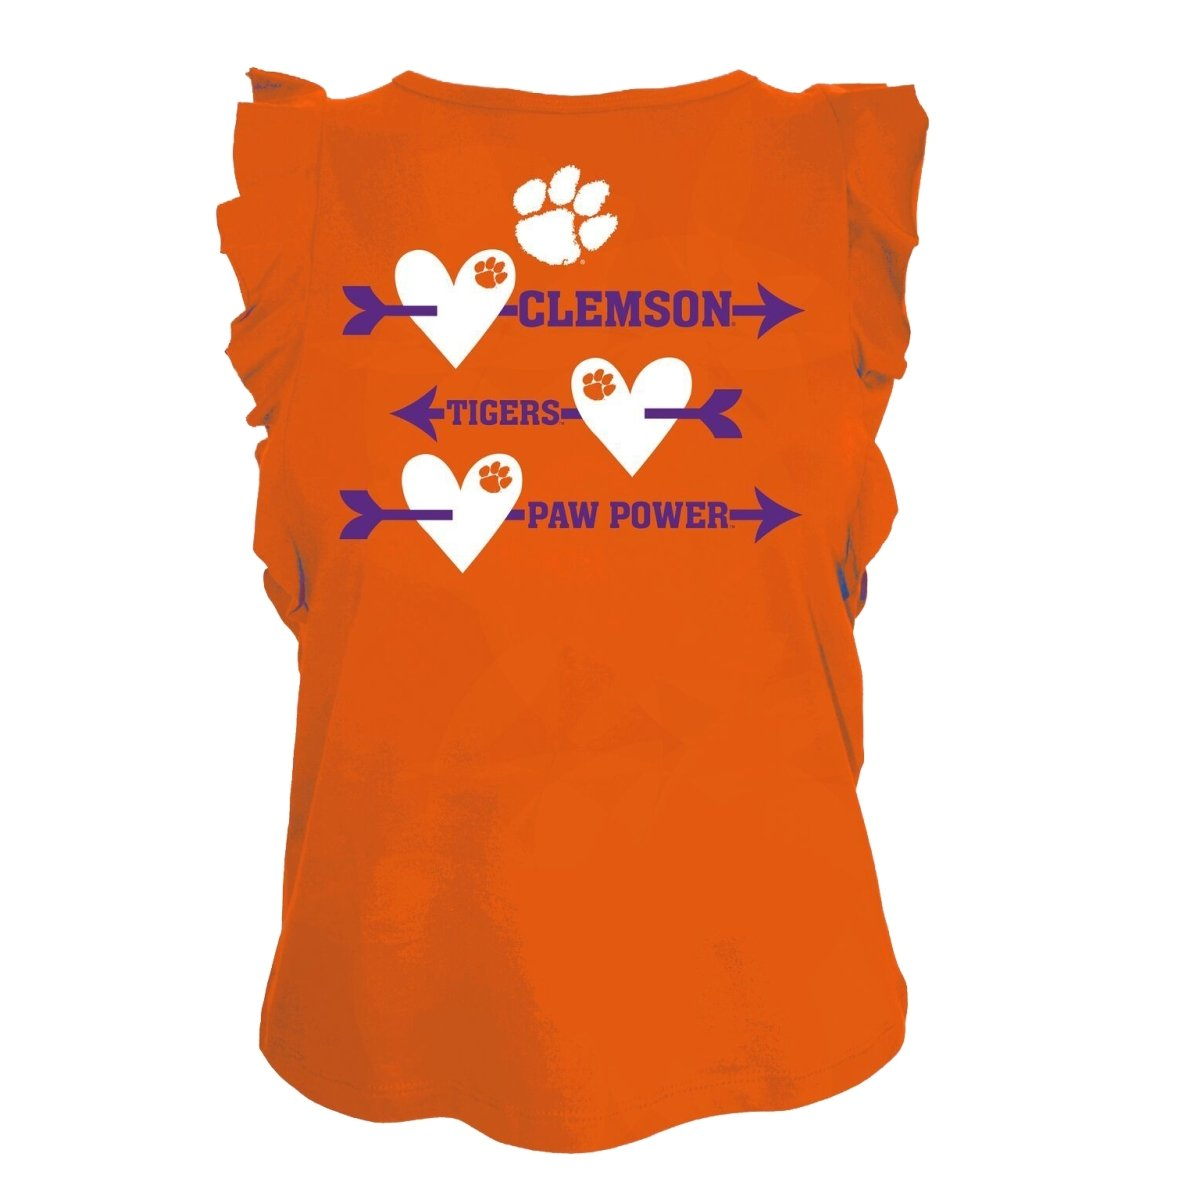 Girls Ruffle Tee Arrows/Hearts Clemson Tigers Paw Power - Mr. Knickerbocker